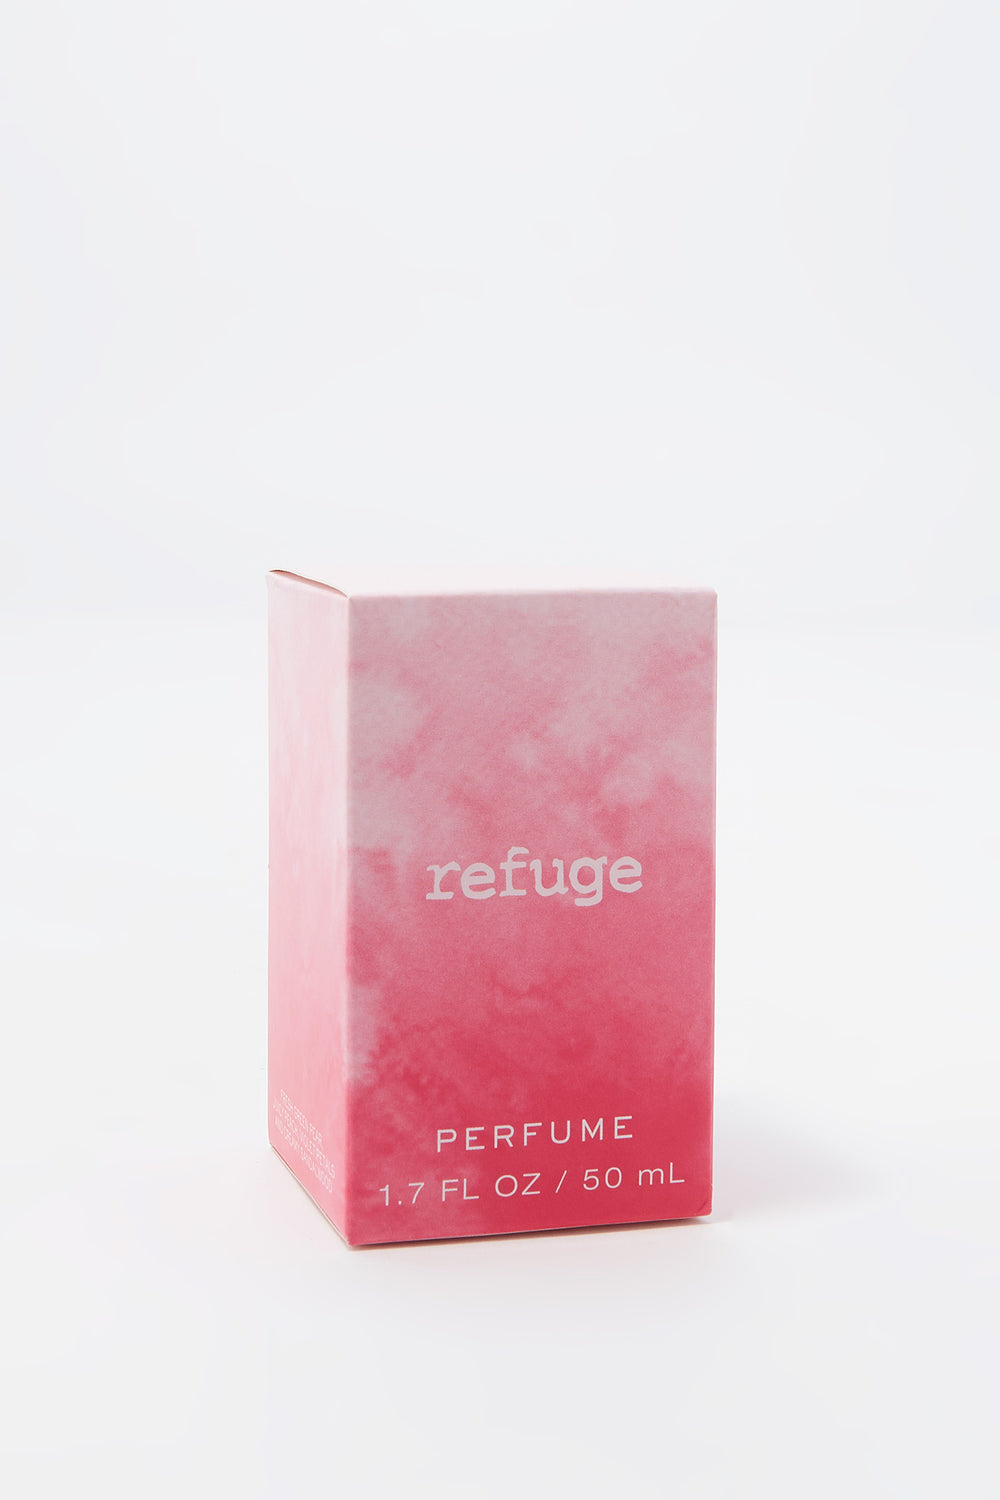 Refuge Perfume Assorted